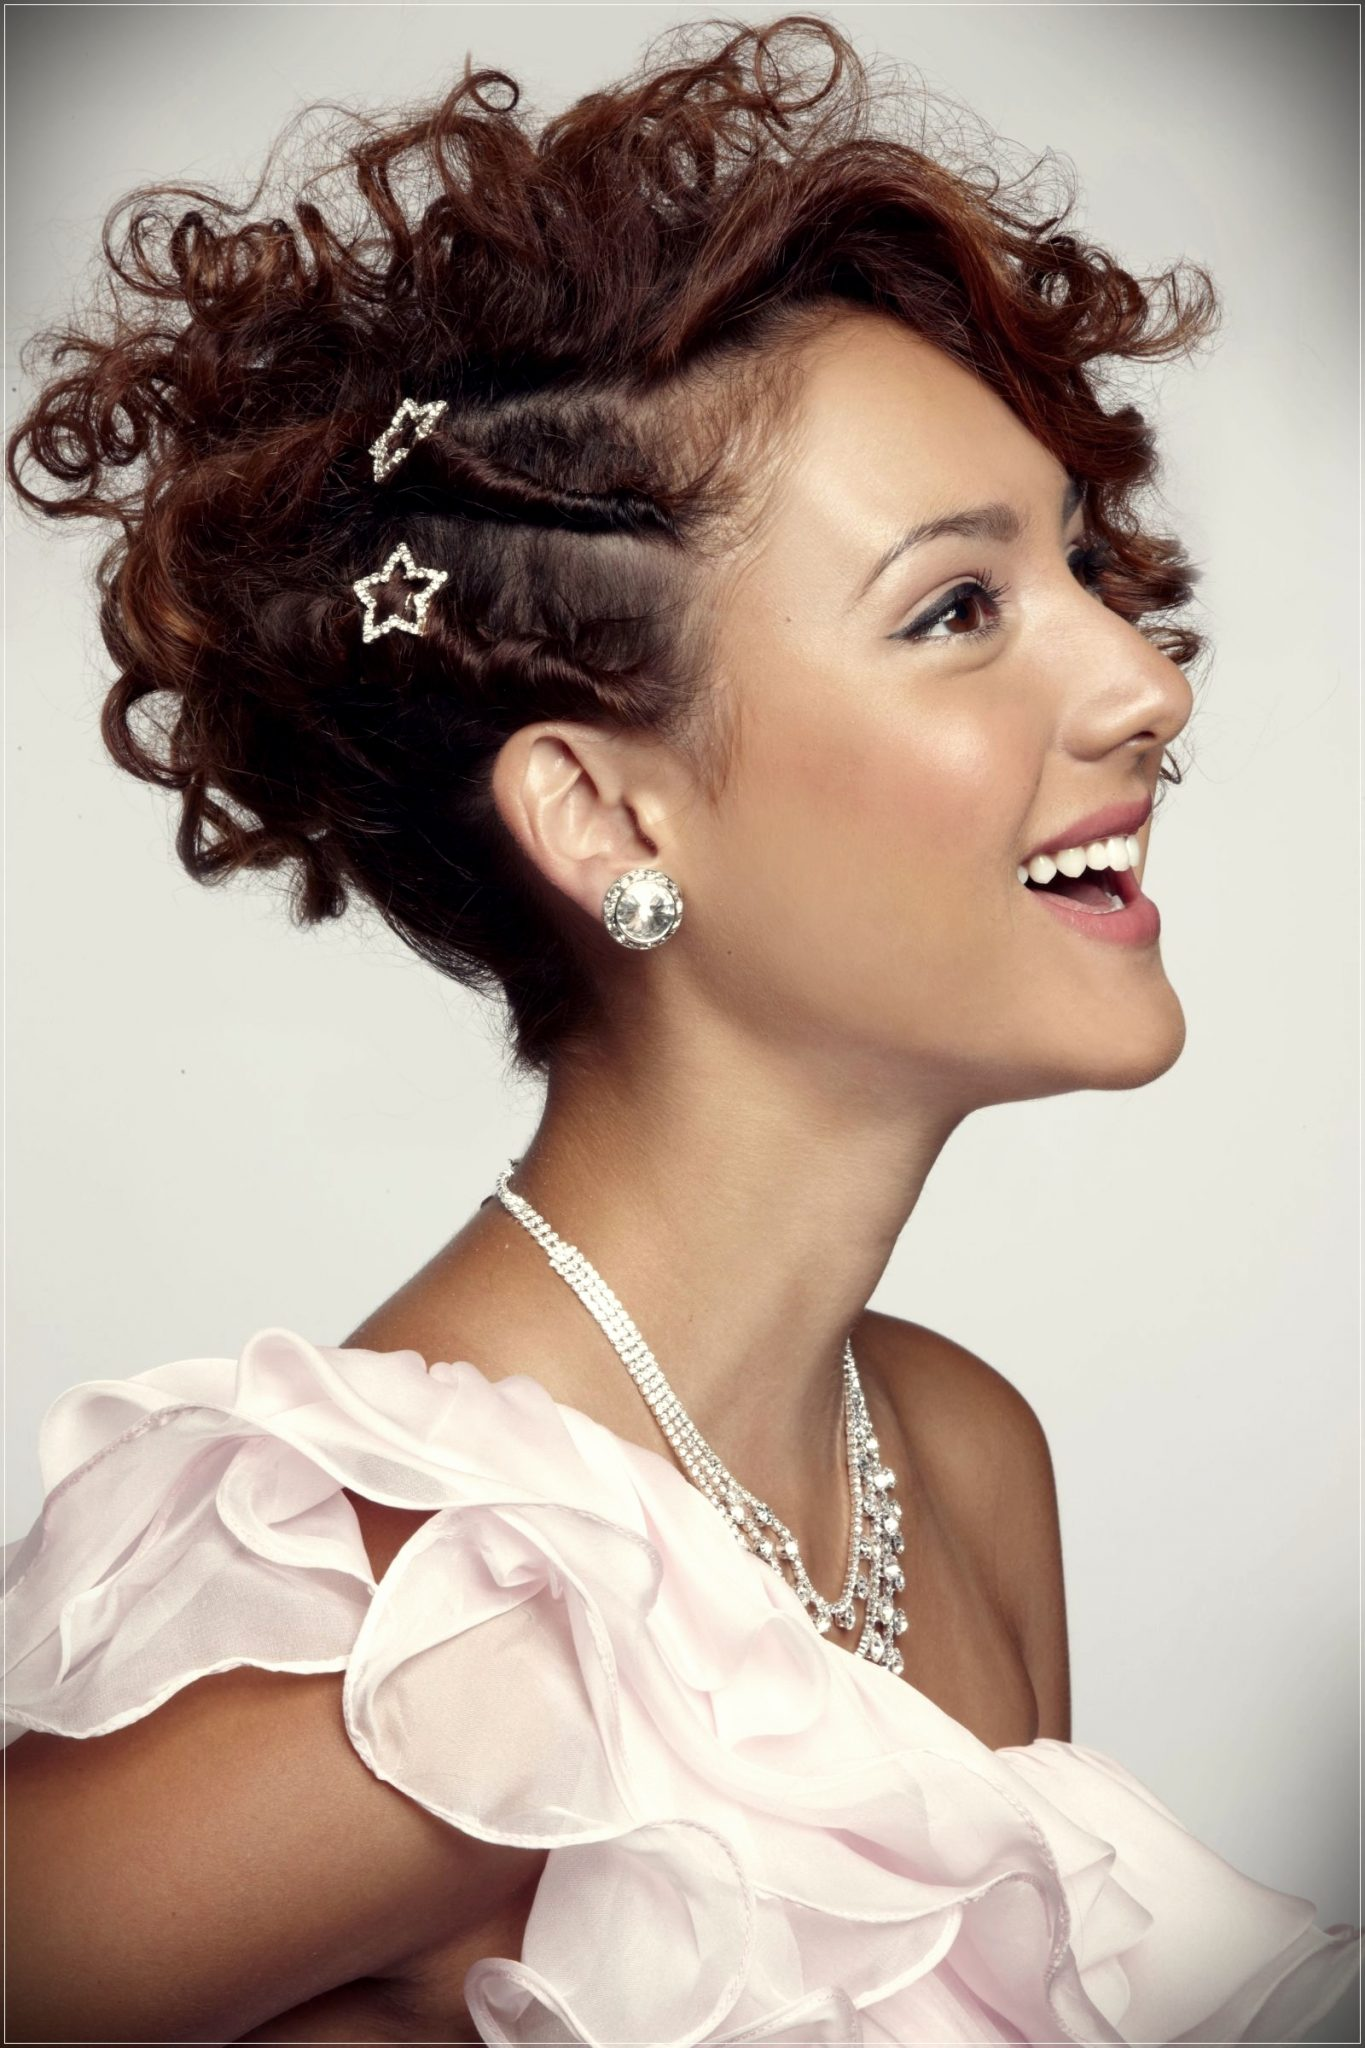 prom hairstyles for short hair 13 - Choose the perfect hairstyle for your short hair